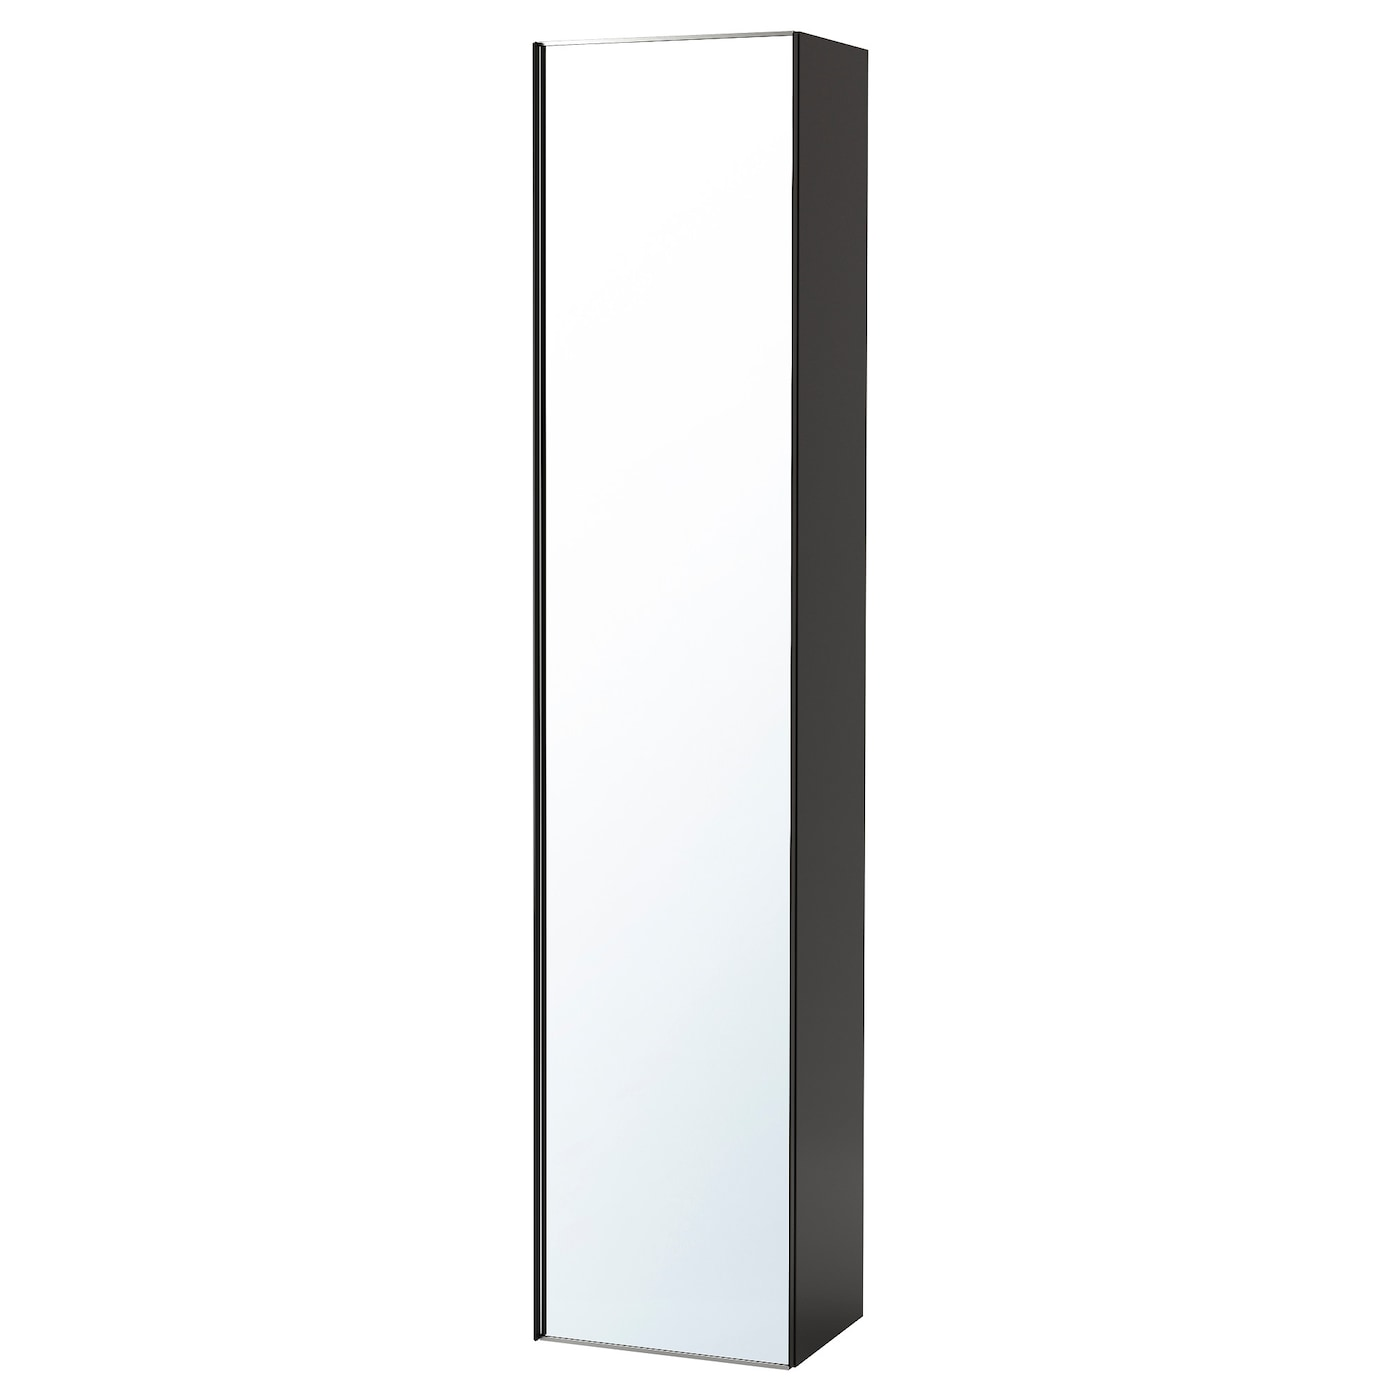 godmorgon high cabinet with mirror door high gloss grey